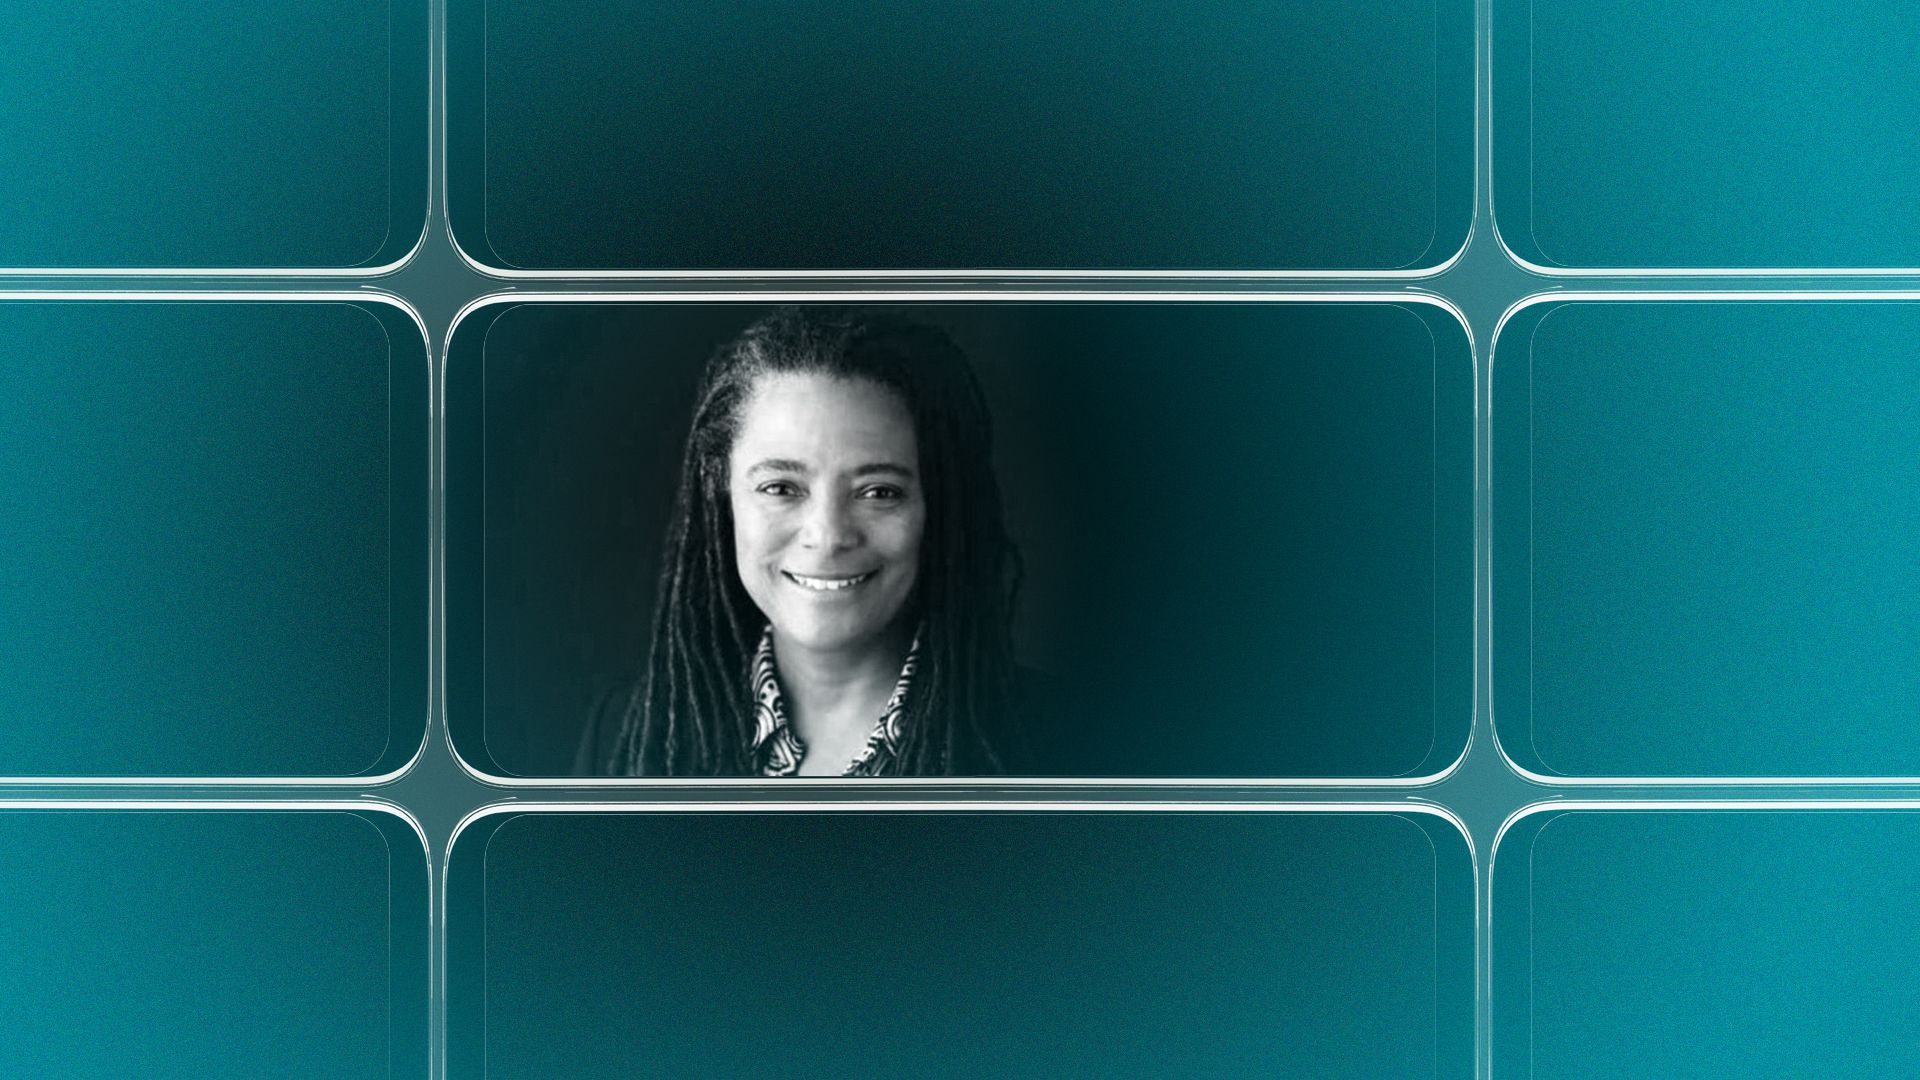 Photo illustration of a grid of smartphone screens, the center one showing an image of Nadine Smith.